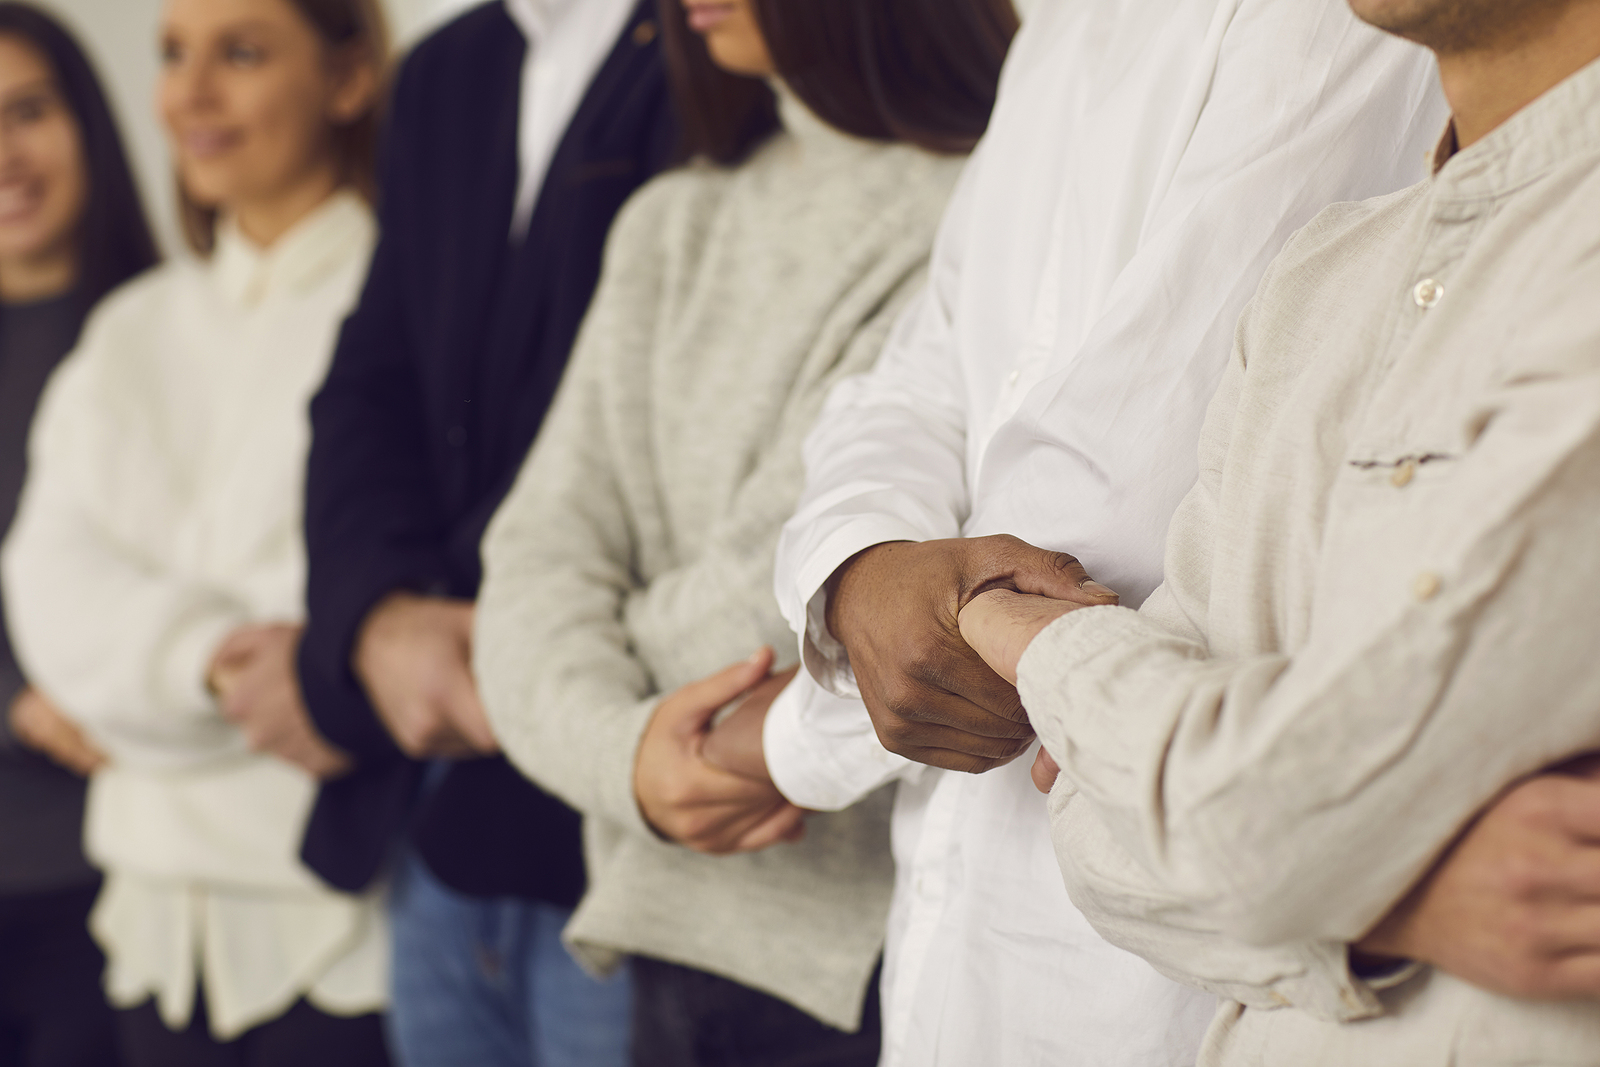 Group of woman holding hands in support. When your support is gone, finding a new one matters. Why not begin grief counseling in Detroit, MI and start taking care of your mental well being with a grief therapist who gets it.